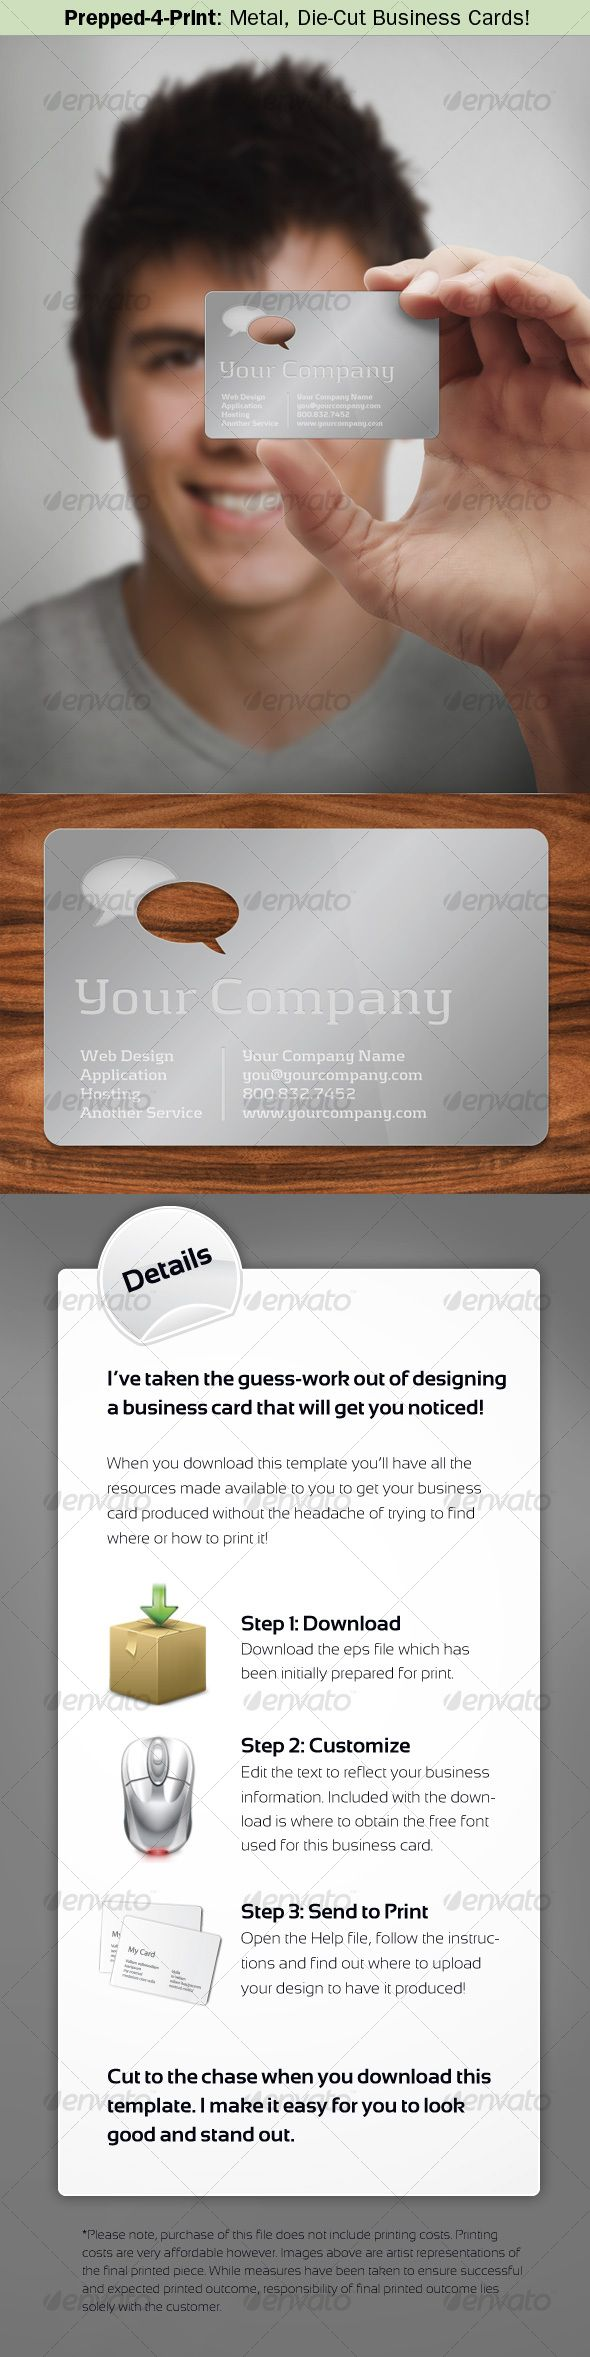 Prepped 4 Print Metal Die Cut Business Card Pinterest Business